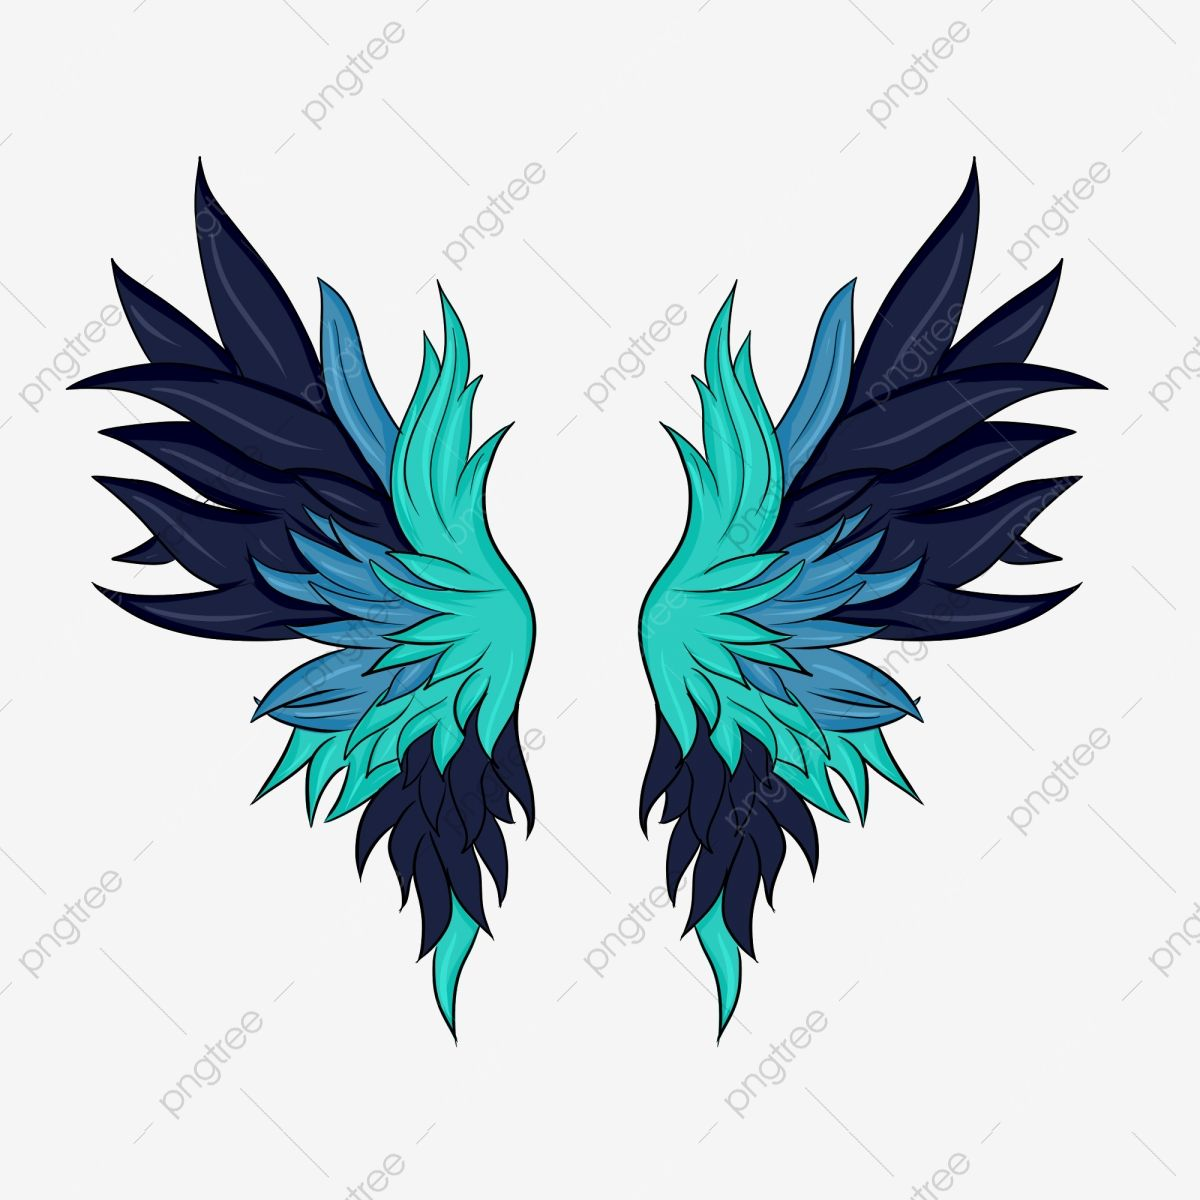 Wing Wing Clipart Source File Angel Wings Png Transparent Clipart Image And Psd File For Free Download Wings Png Angel Wings Png Wings